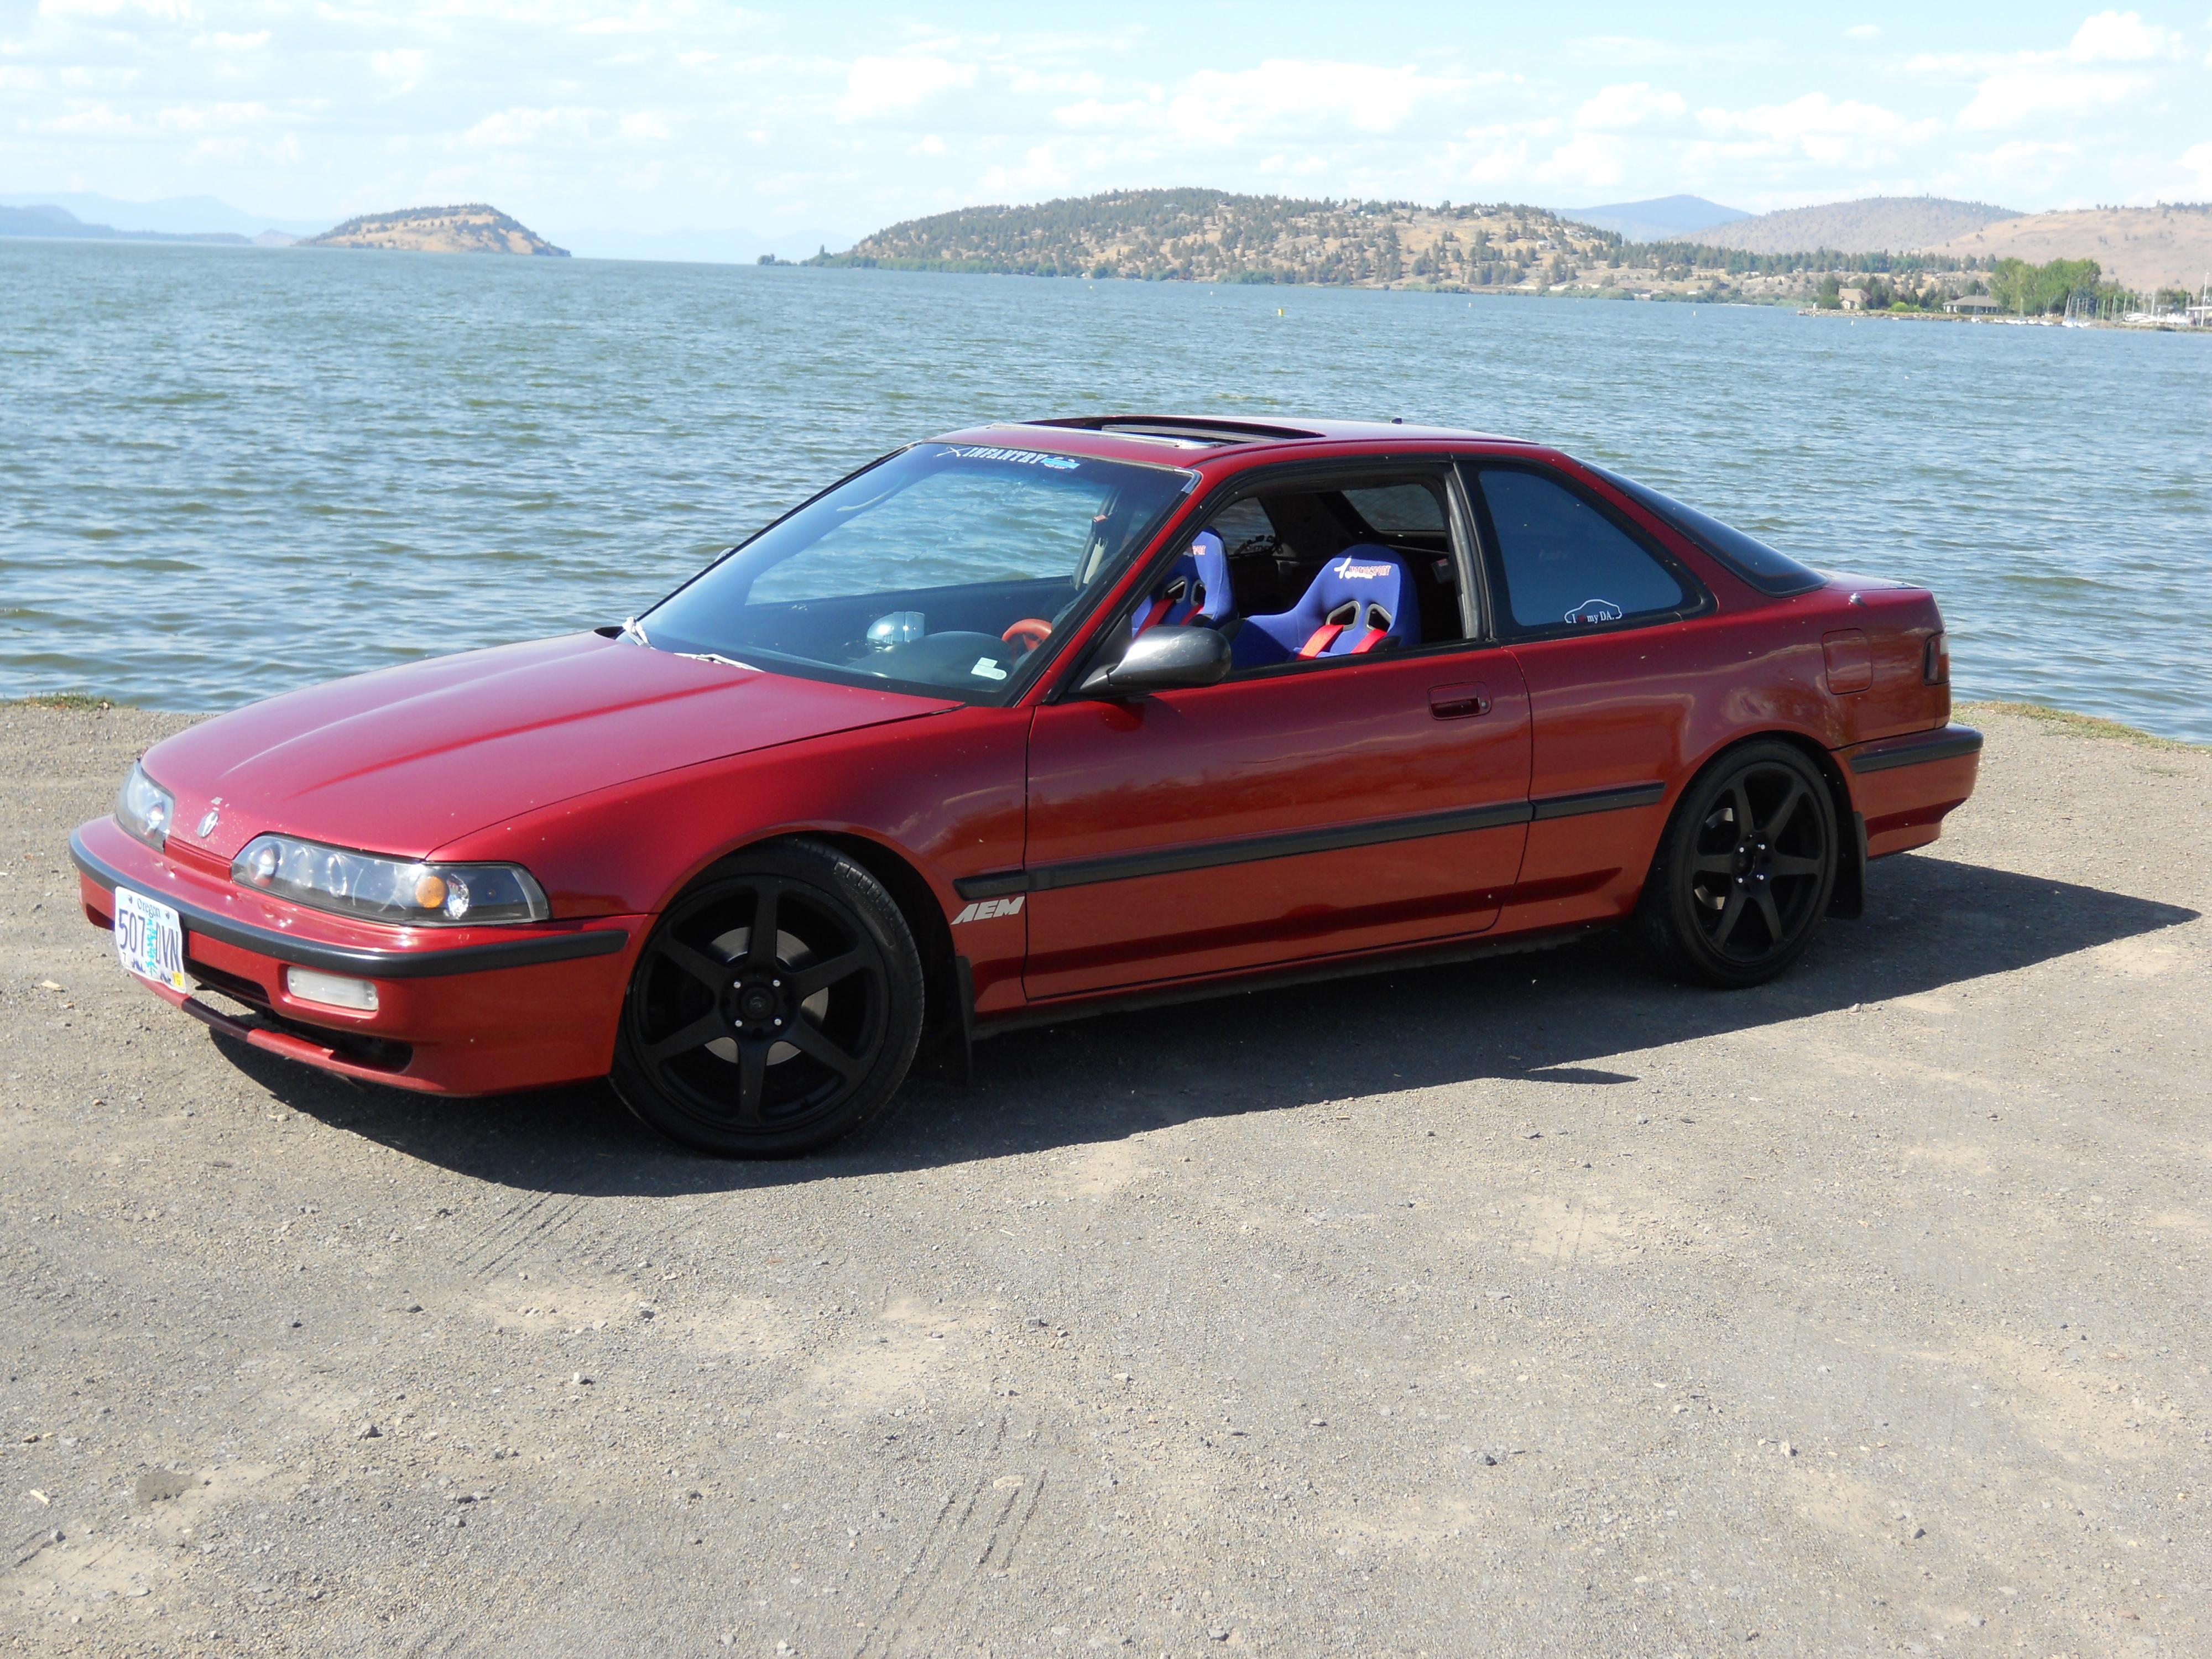 is to extensions center r batshit s roll than front setup acura drivermod integra suspension a build you help oddly lower type simpler find the ball car fast how expect ll d crazy this joint